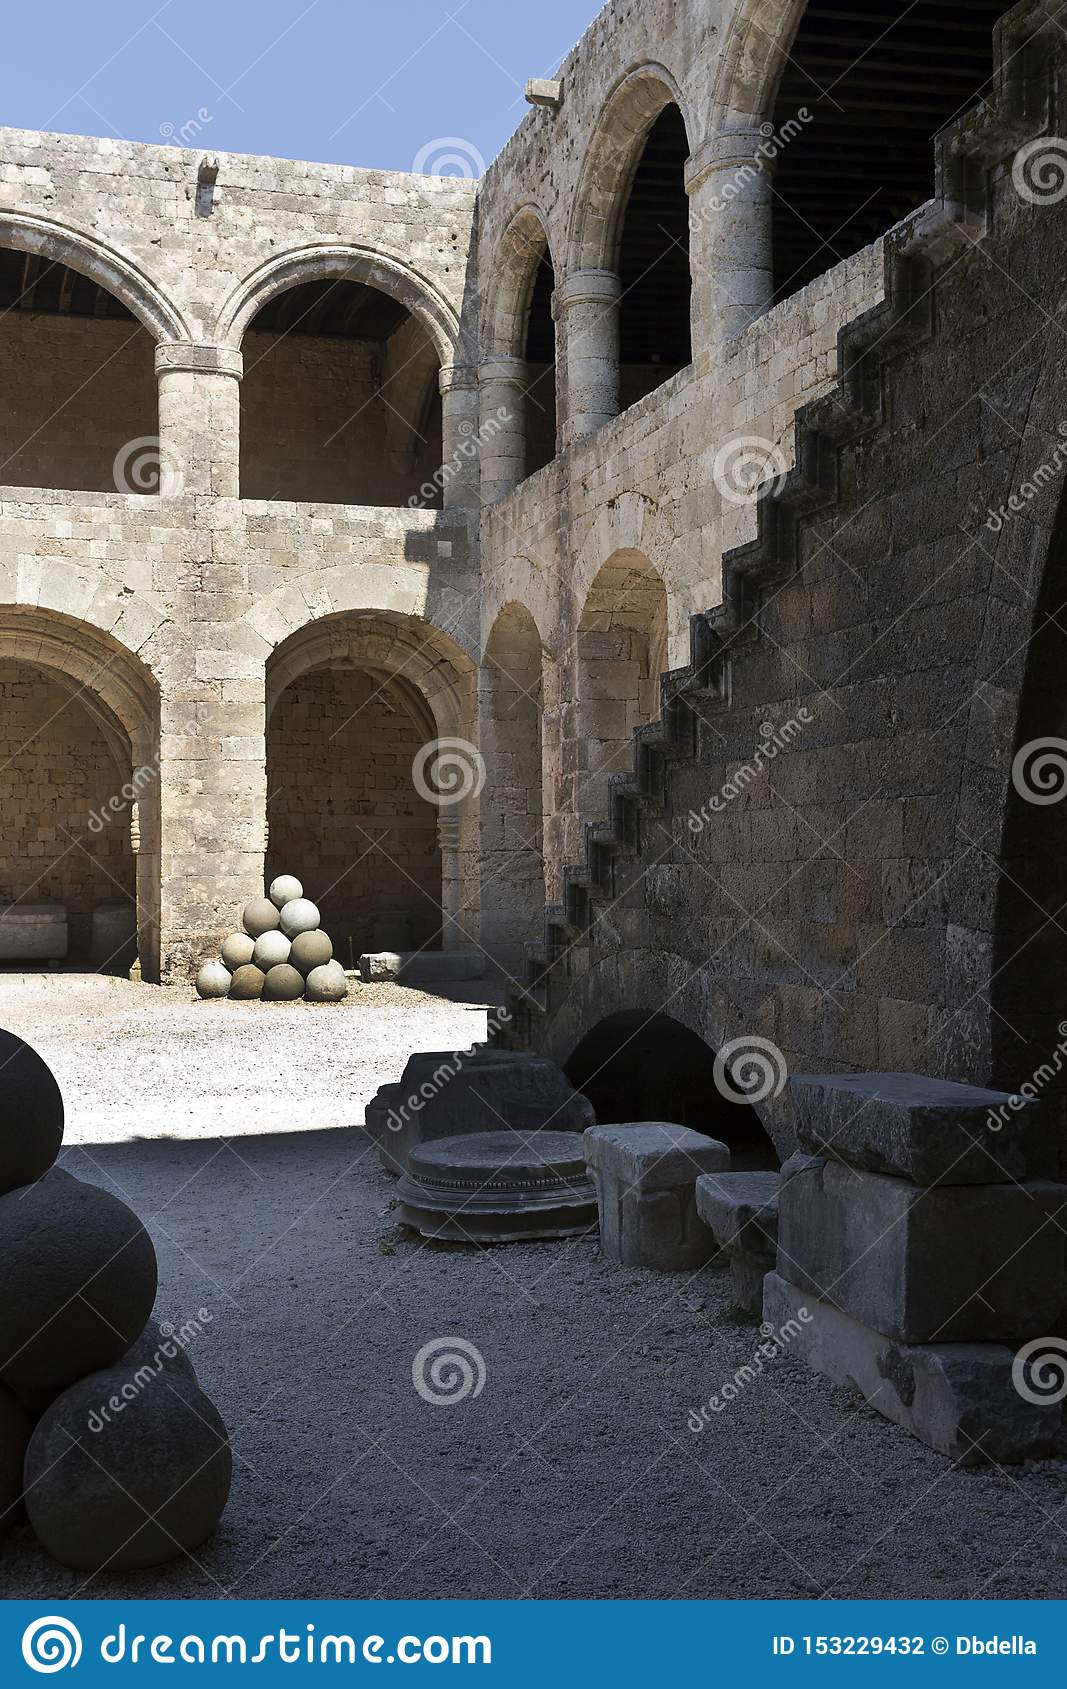 Rhodes Old City - Outside stairway, cannon ball in the main courtyard of Hospital of the Knights. At present Archaeological museu